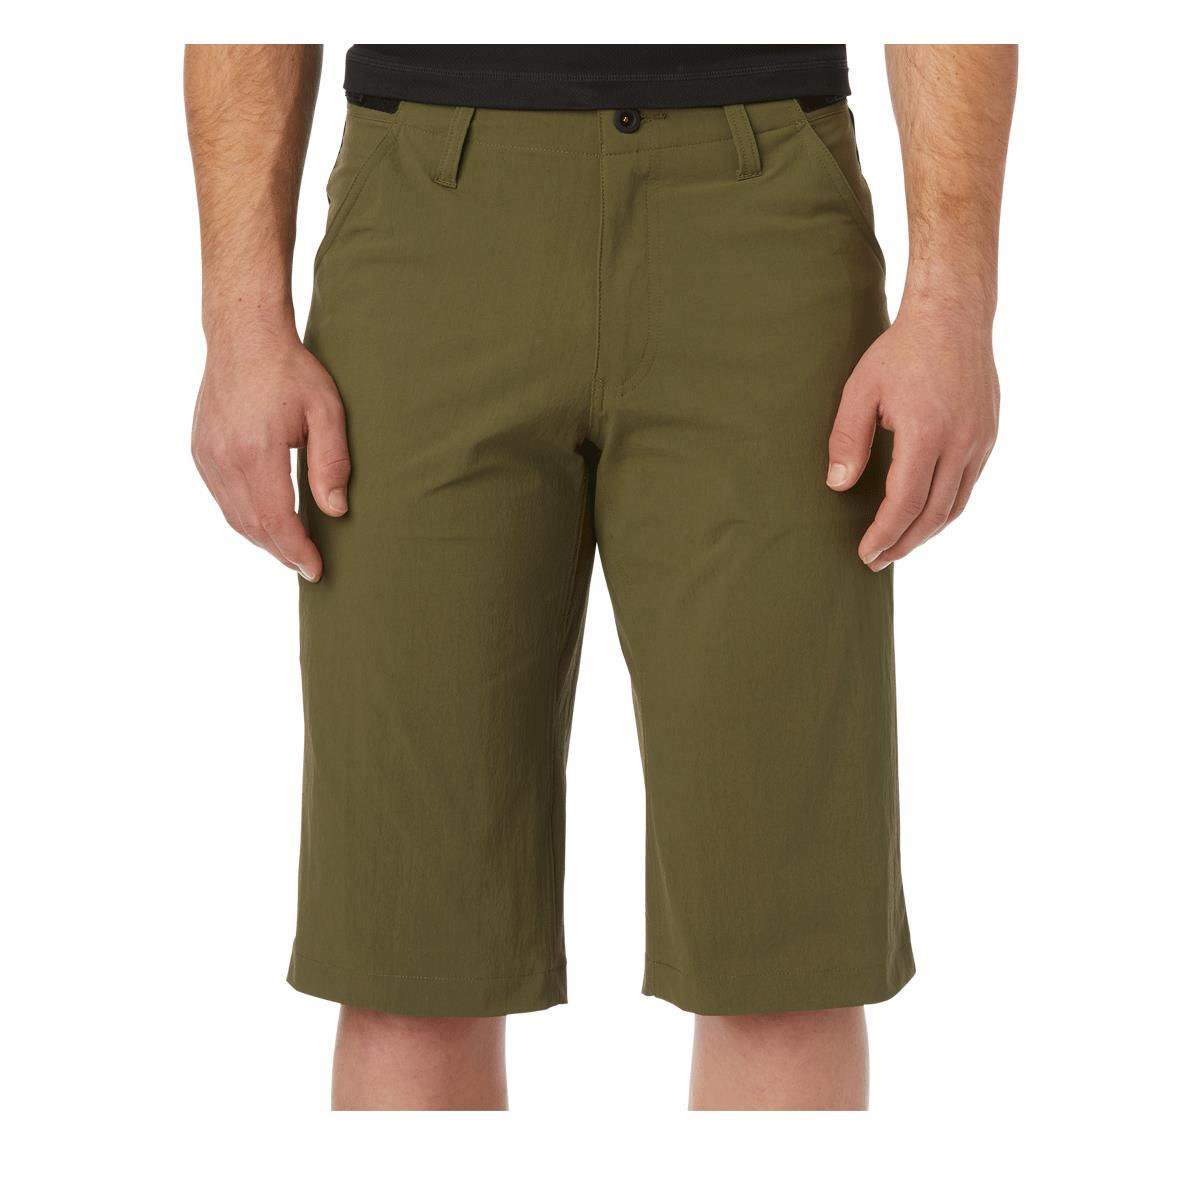 Short Giro Truant - 2XL Vert olive | Cuissards courts